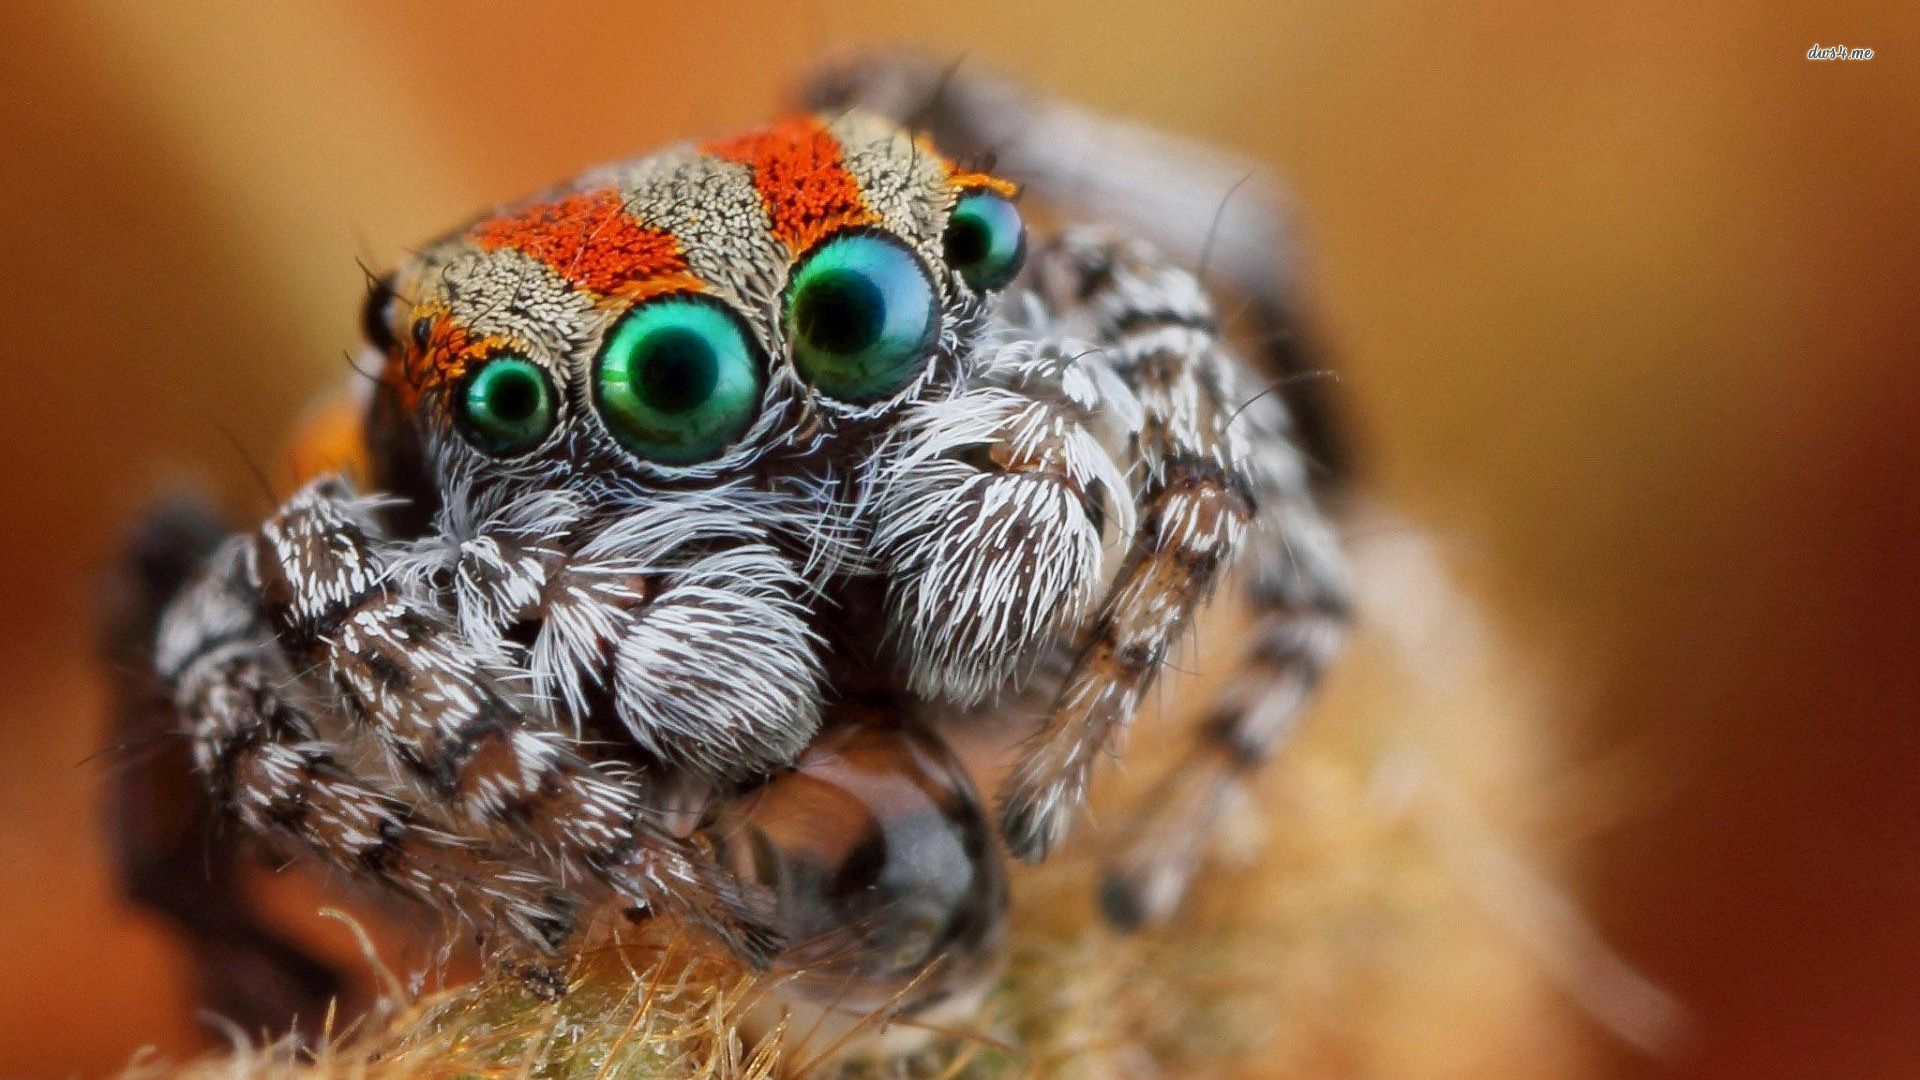 ... Jumping spider close up wallpaper 1920x1080 ...